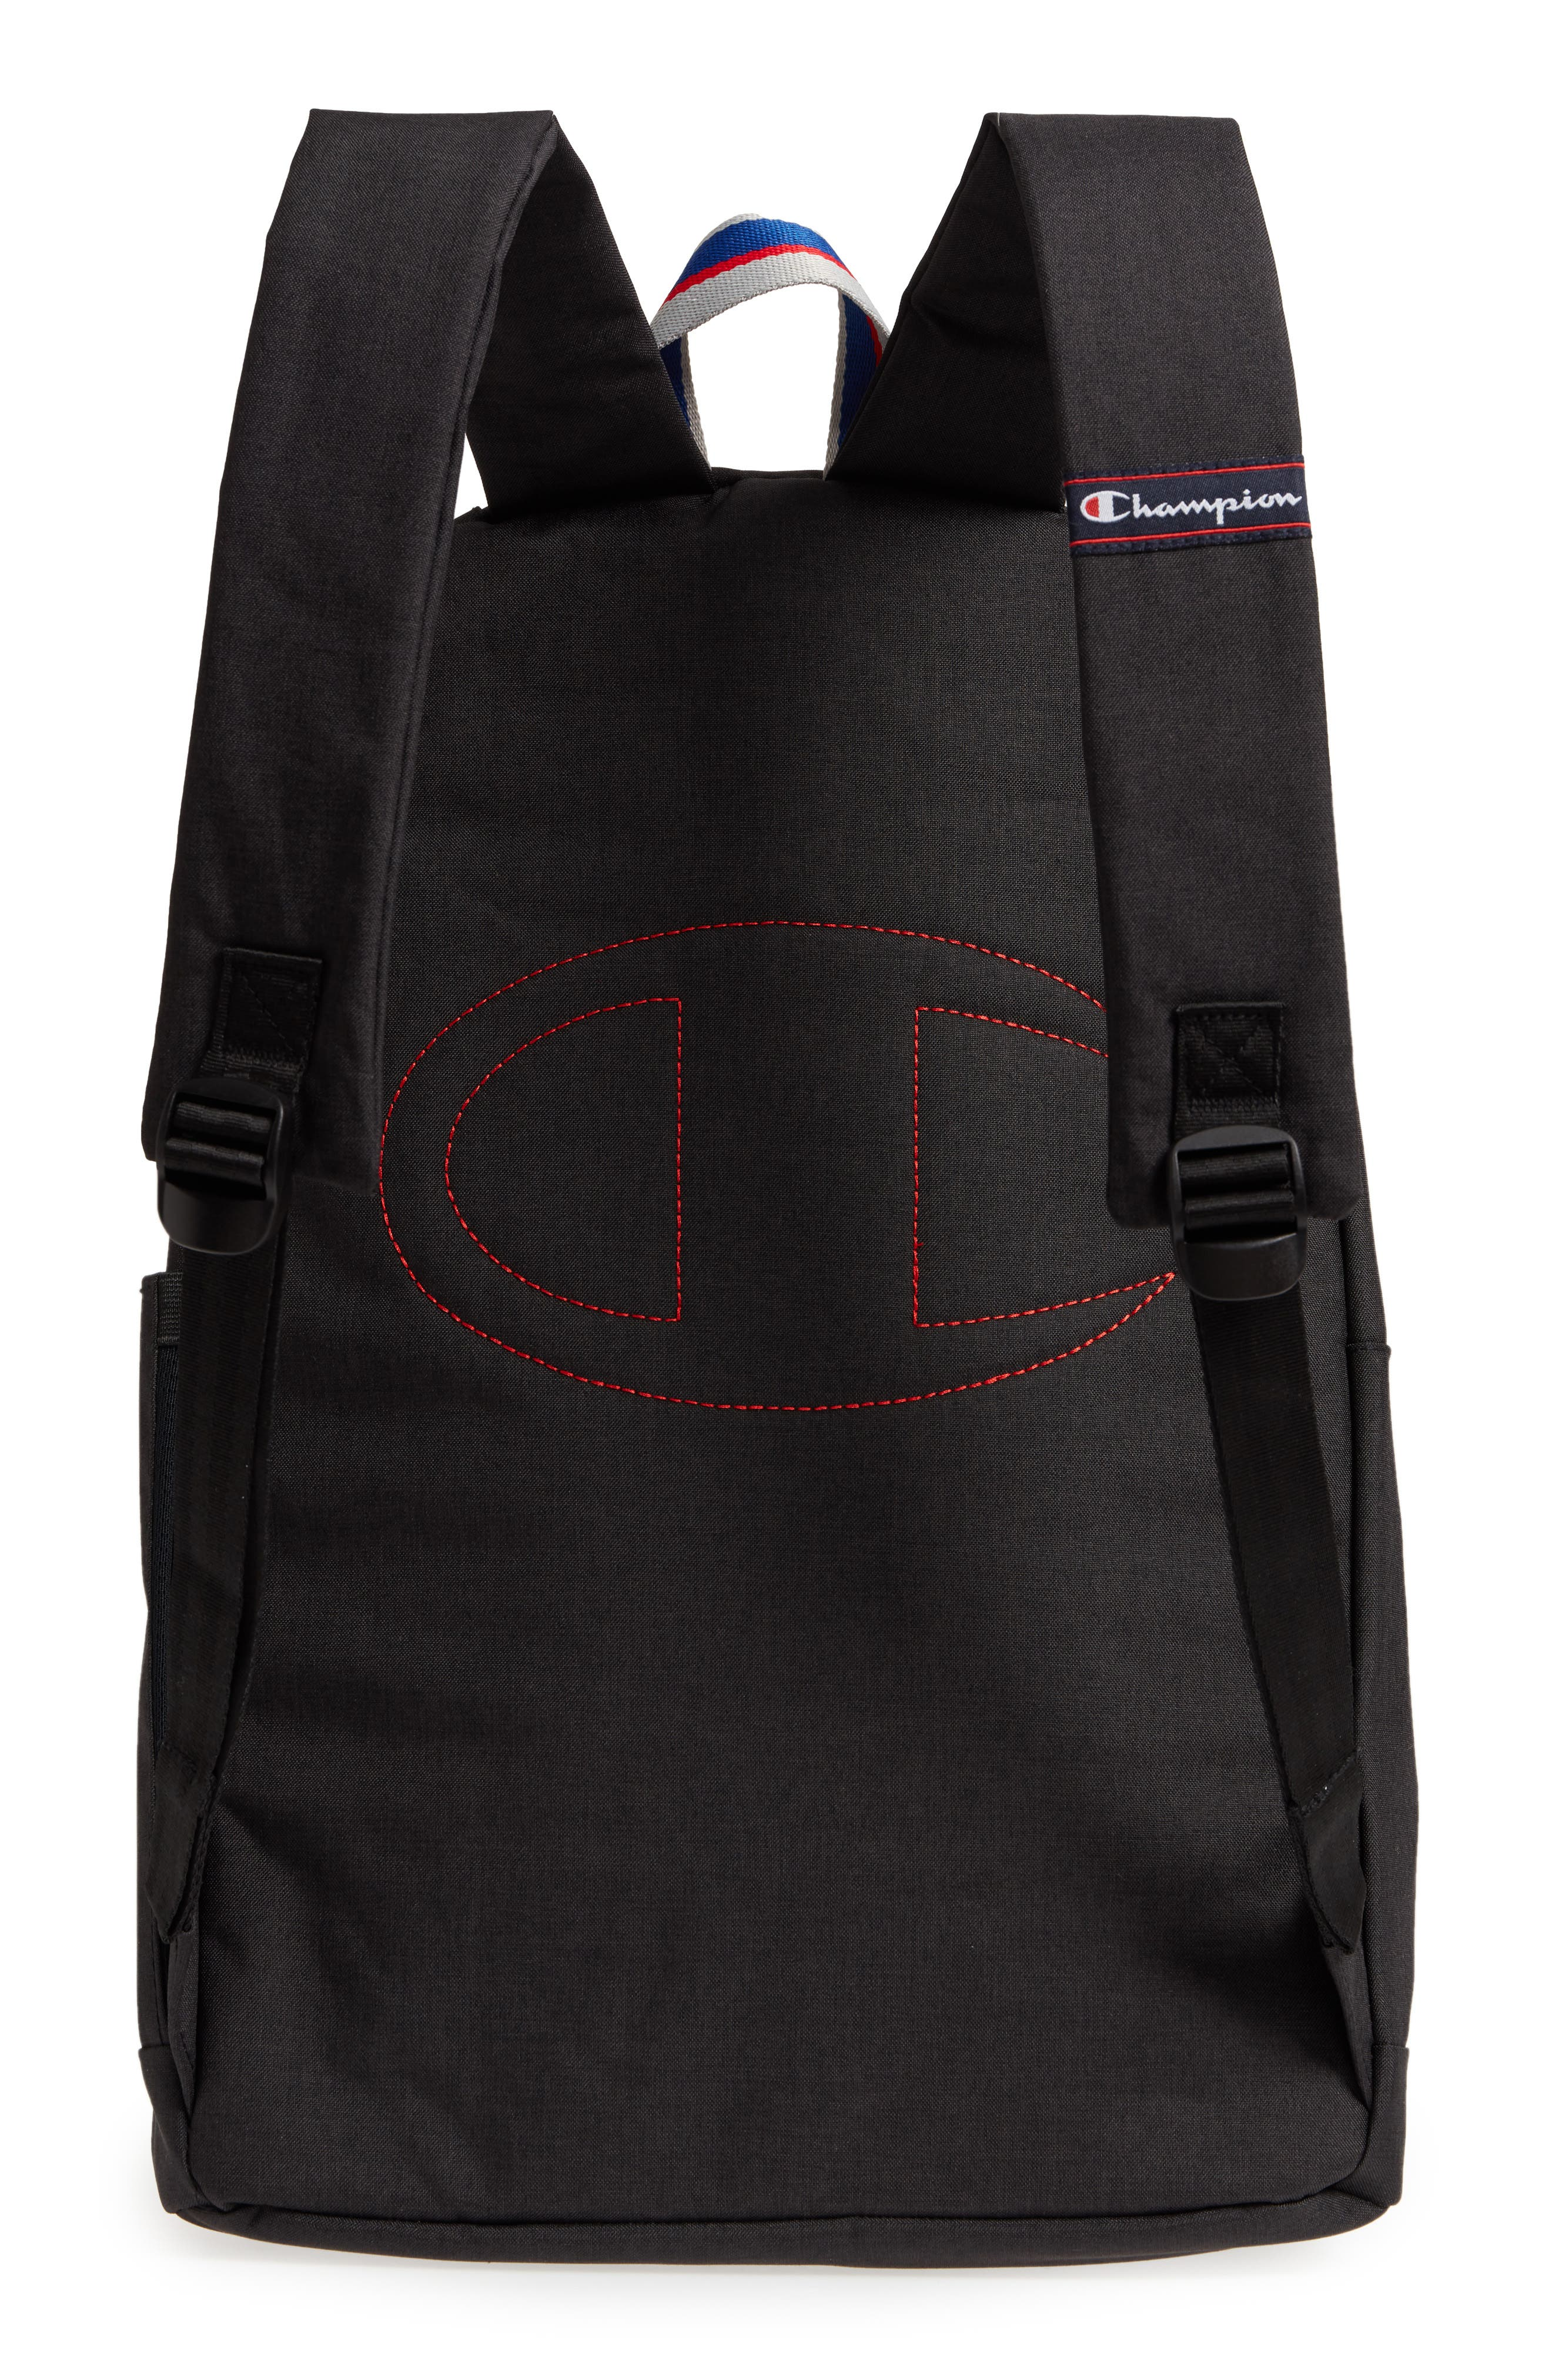 Supercize Backpack,                             Alternate thumbnail 3, color,                             BLACK HEATHER